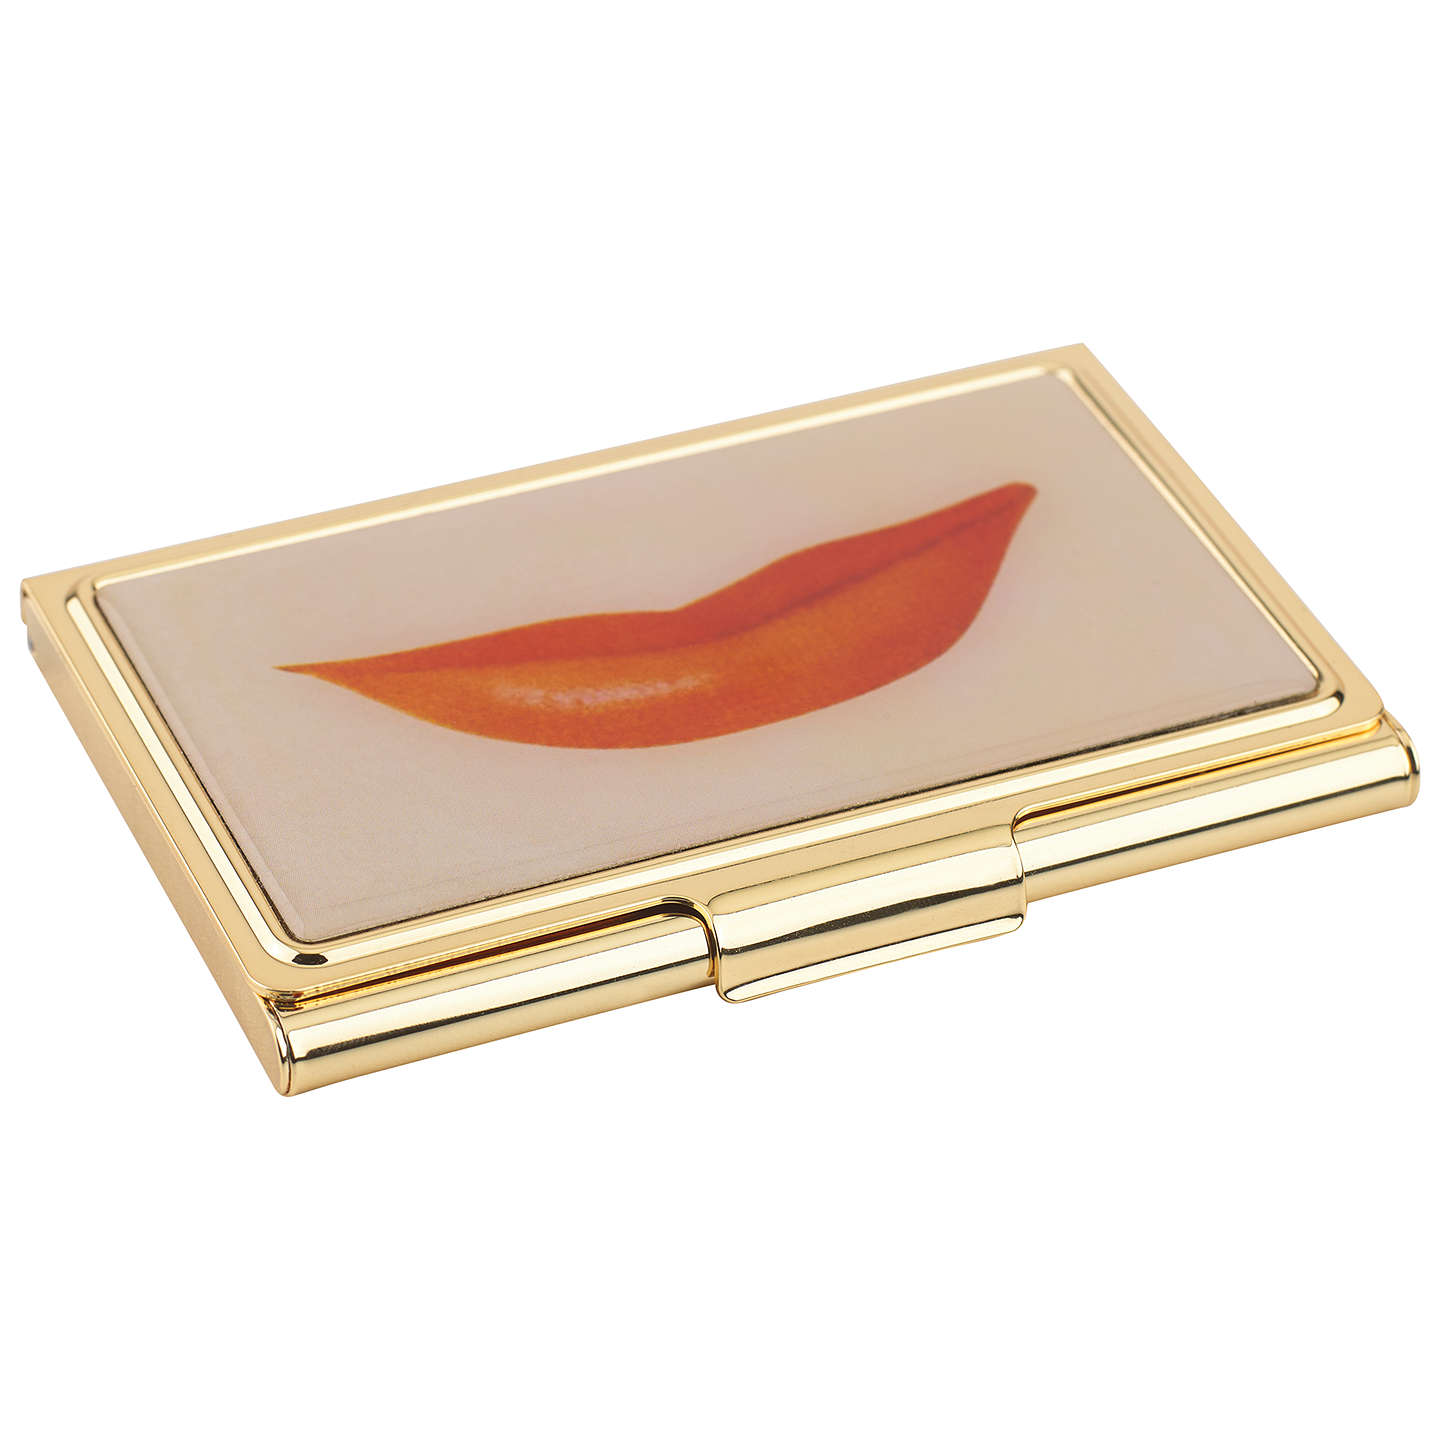 kate spade new york Lips Business Card Holder, Gold/ Pink at John Lewis